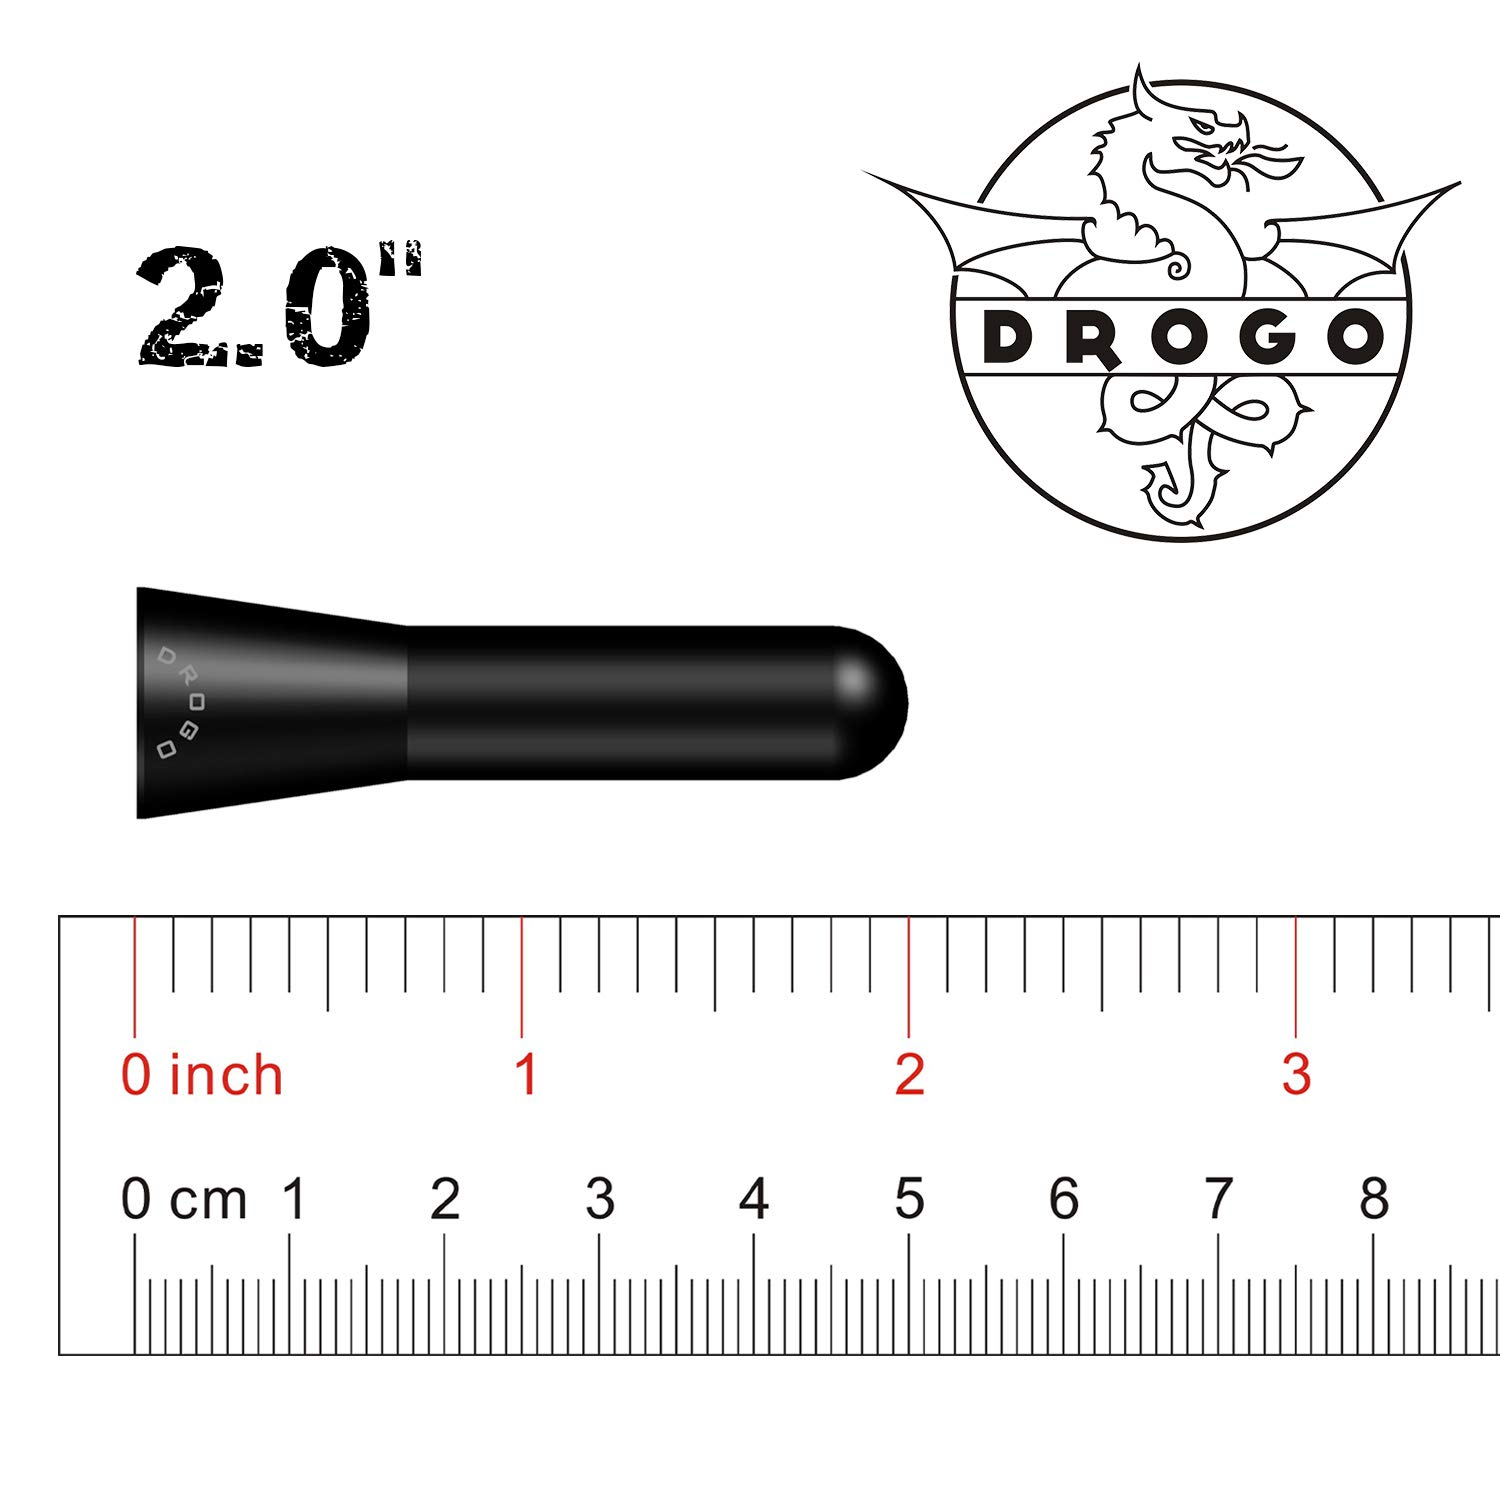 DROGO 2 StandX Replacement Antenna for BMW 3 Series Convertible 1991-2006 Tough Material Creative Design FM//AM Reception Enhanced Stealth Black